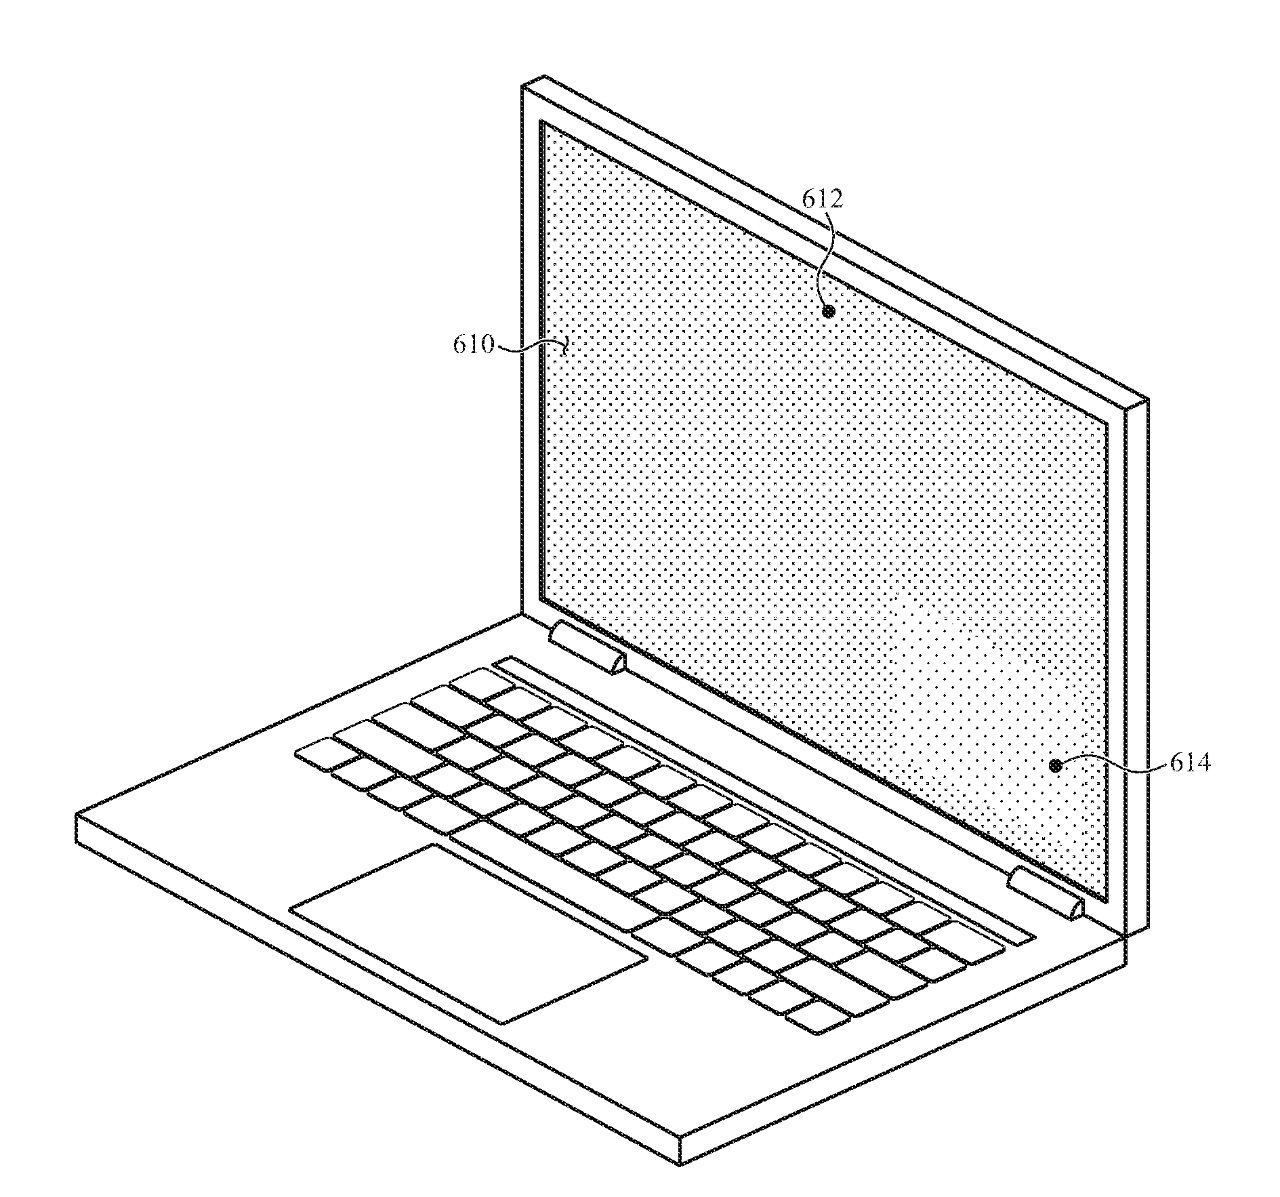 The same idea could be used in a MacBook Pro display